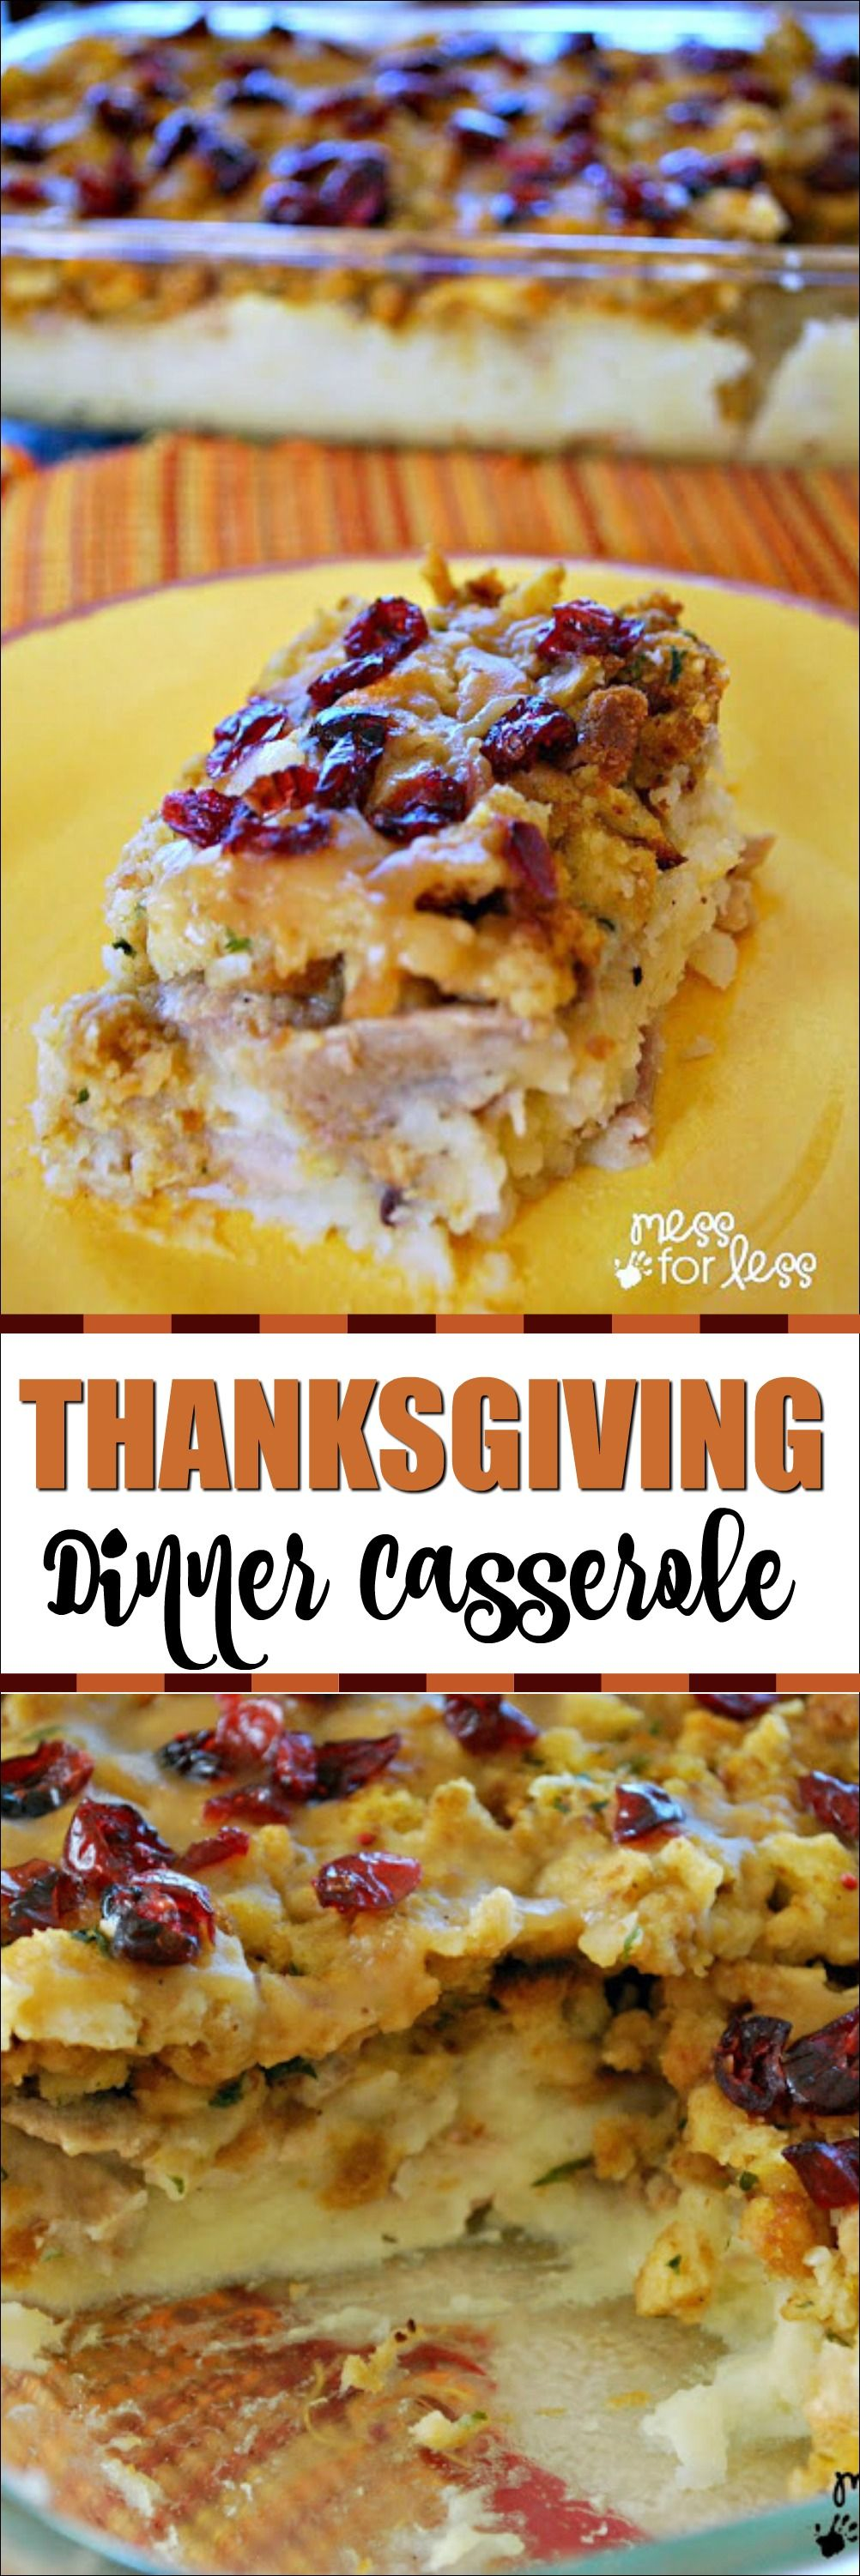 Thanksgiving Dinner Casserole - This turkey and stuffing casserole combines your favorite Thanksgiving flavors in an easy dish. #thanksgivingrecipes